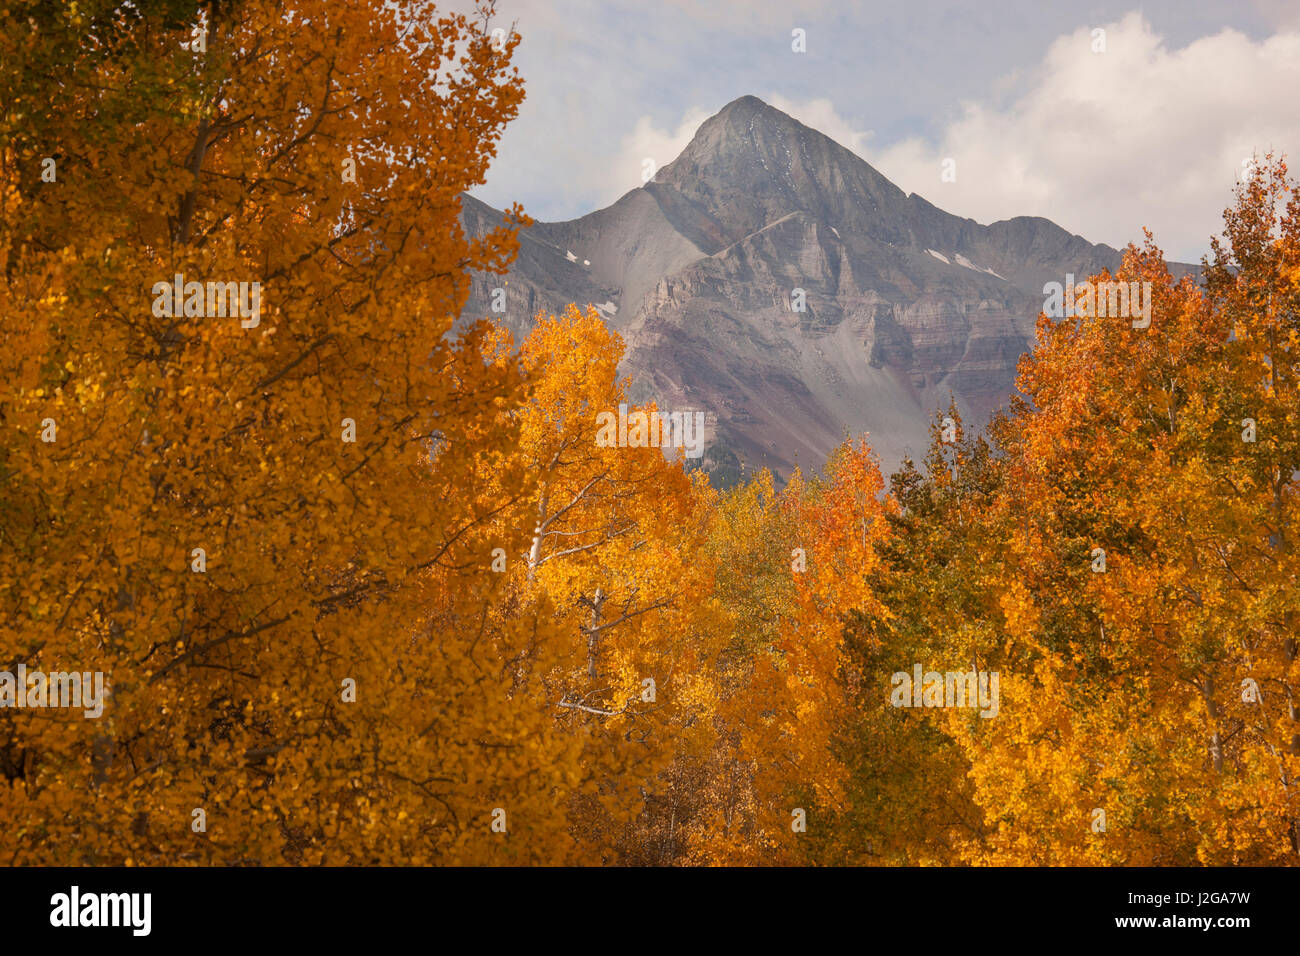 USA, Colorado, Uncompahgre National Forest. Wilson Peak and forest landscape. Credit as: Don Grall / Jaynes Gallery - Stock Image